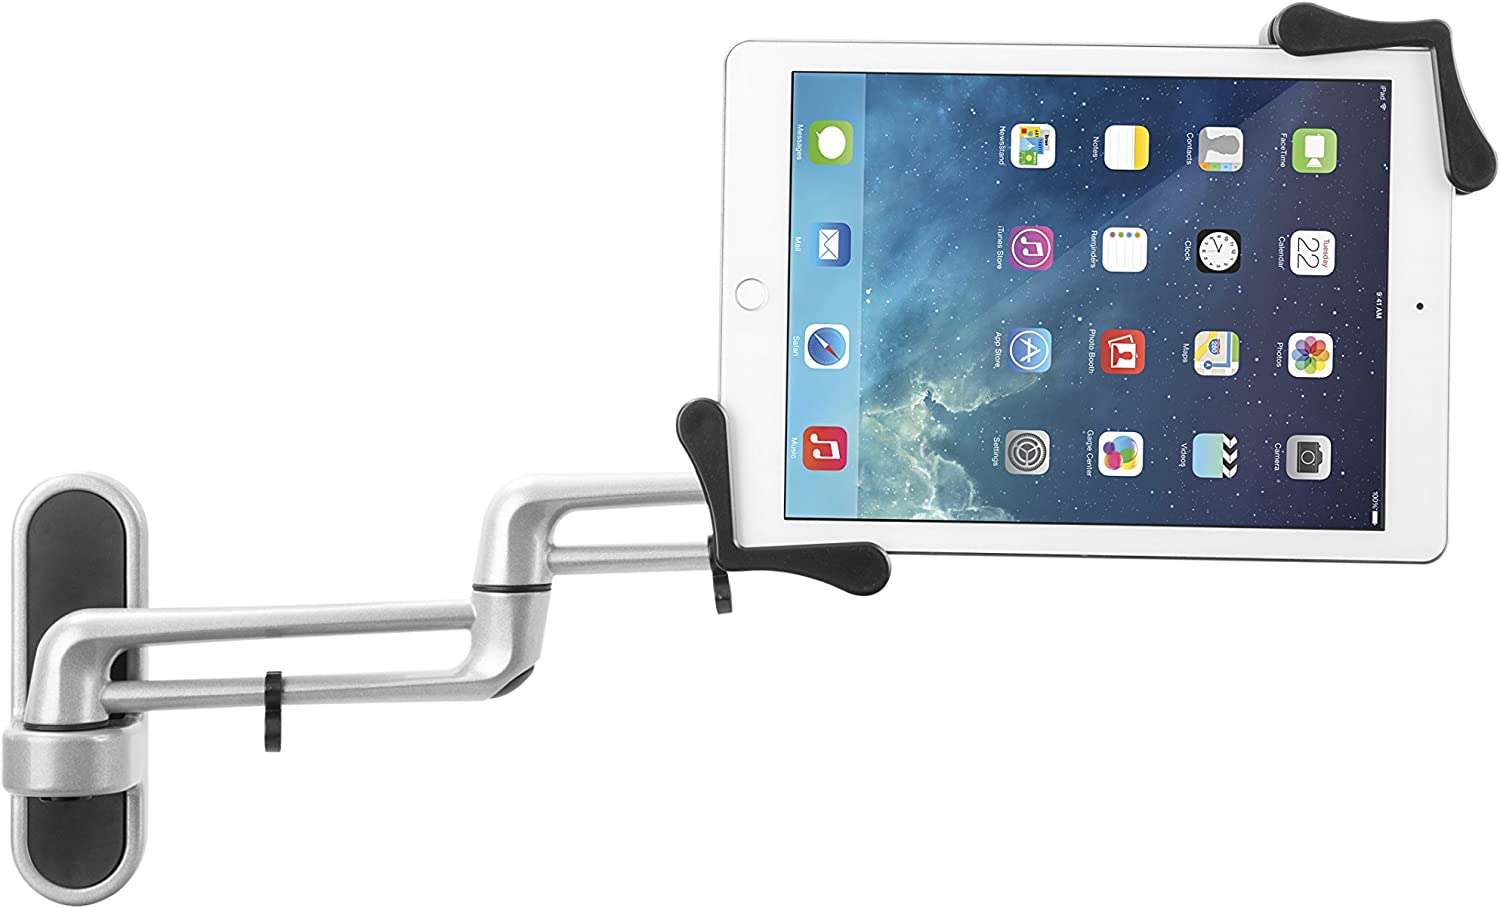 NEW Cta Digital Articulating Security Wall Mount for iPad//Tablet